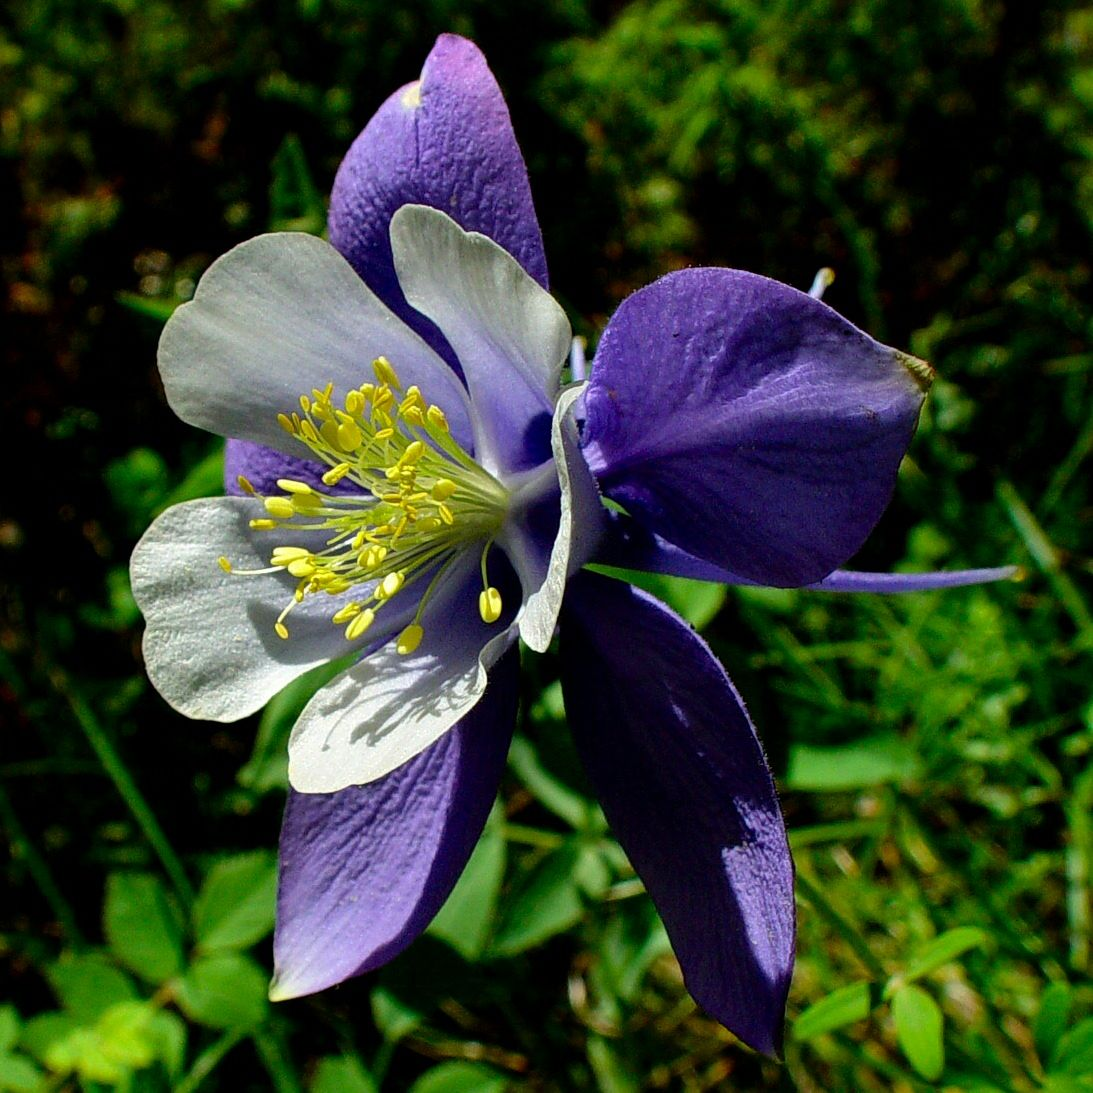 Colorado State Flower The White And Lavender Columbine Proflowers Blog